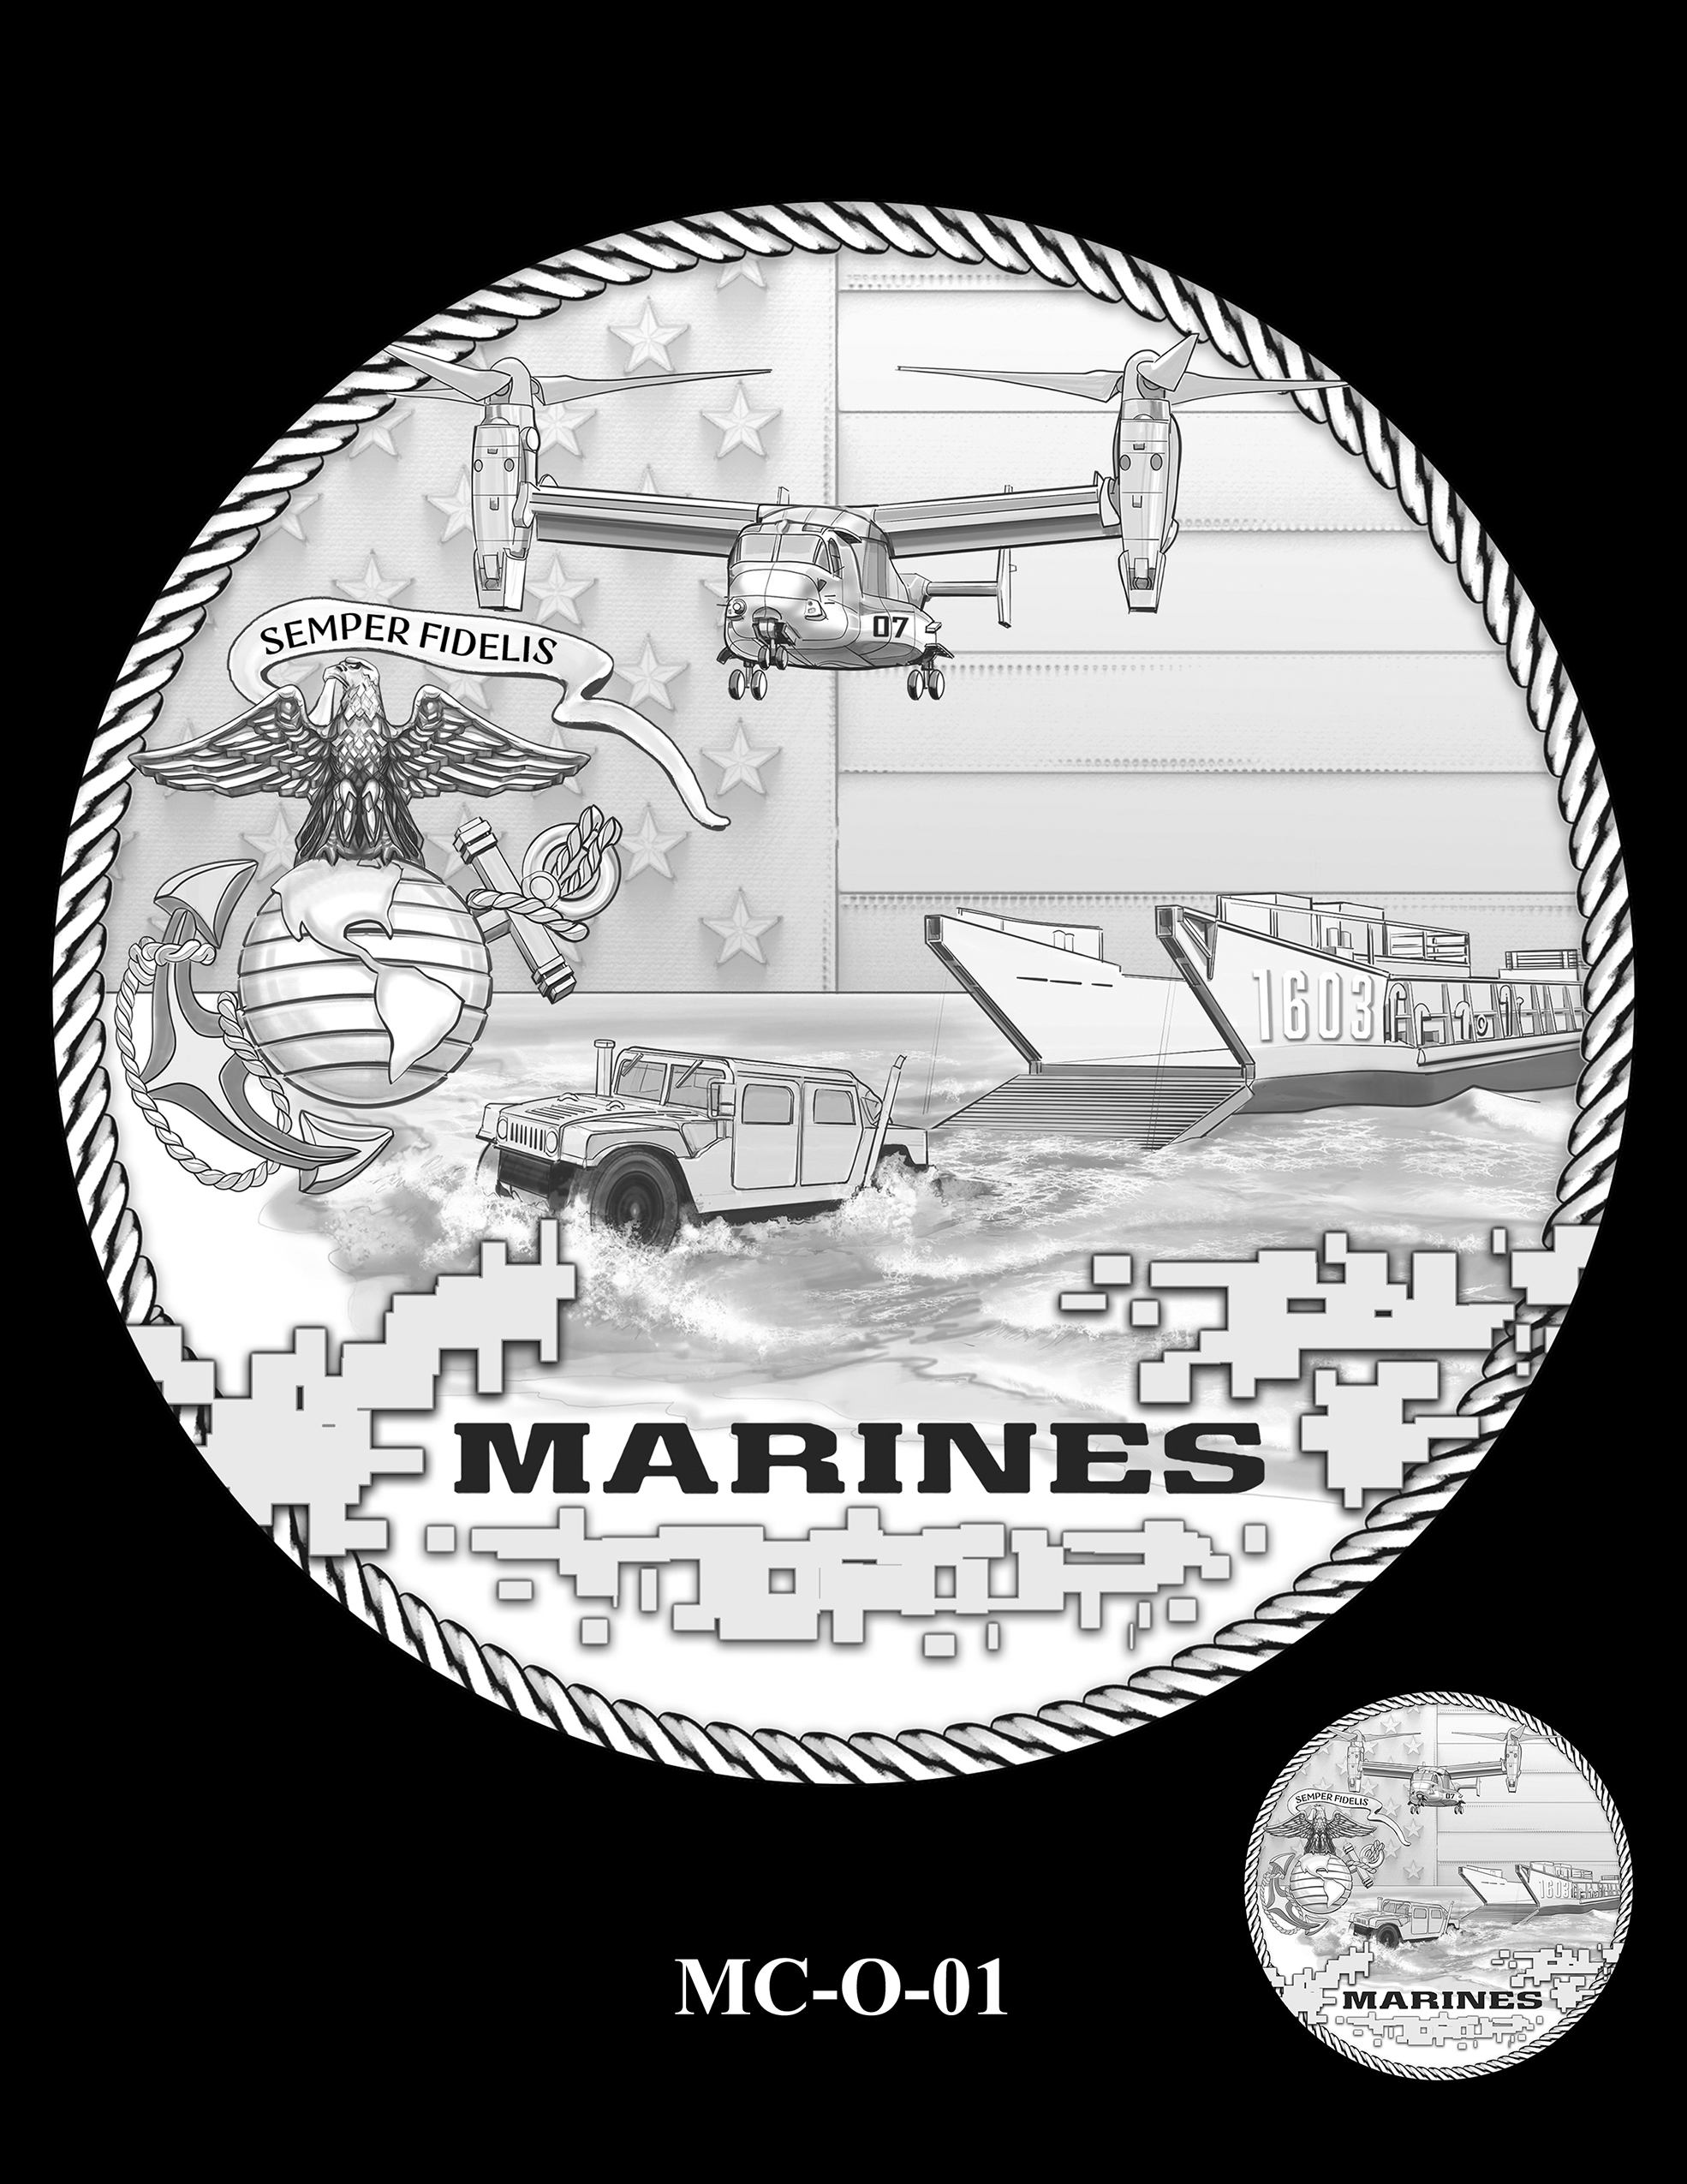 MC-O-01 -- United States Marine Corps Silver Medal